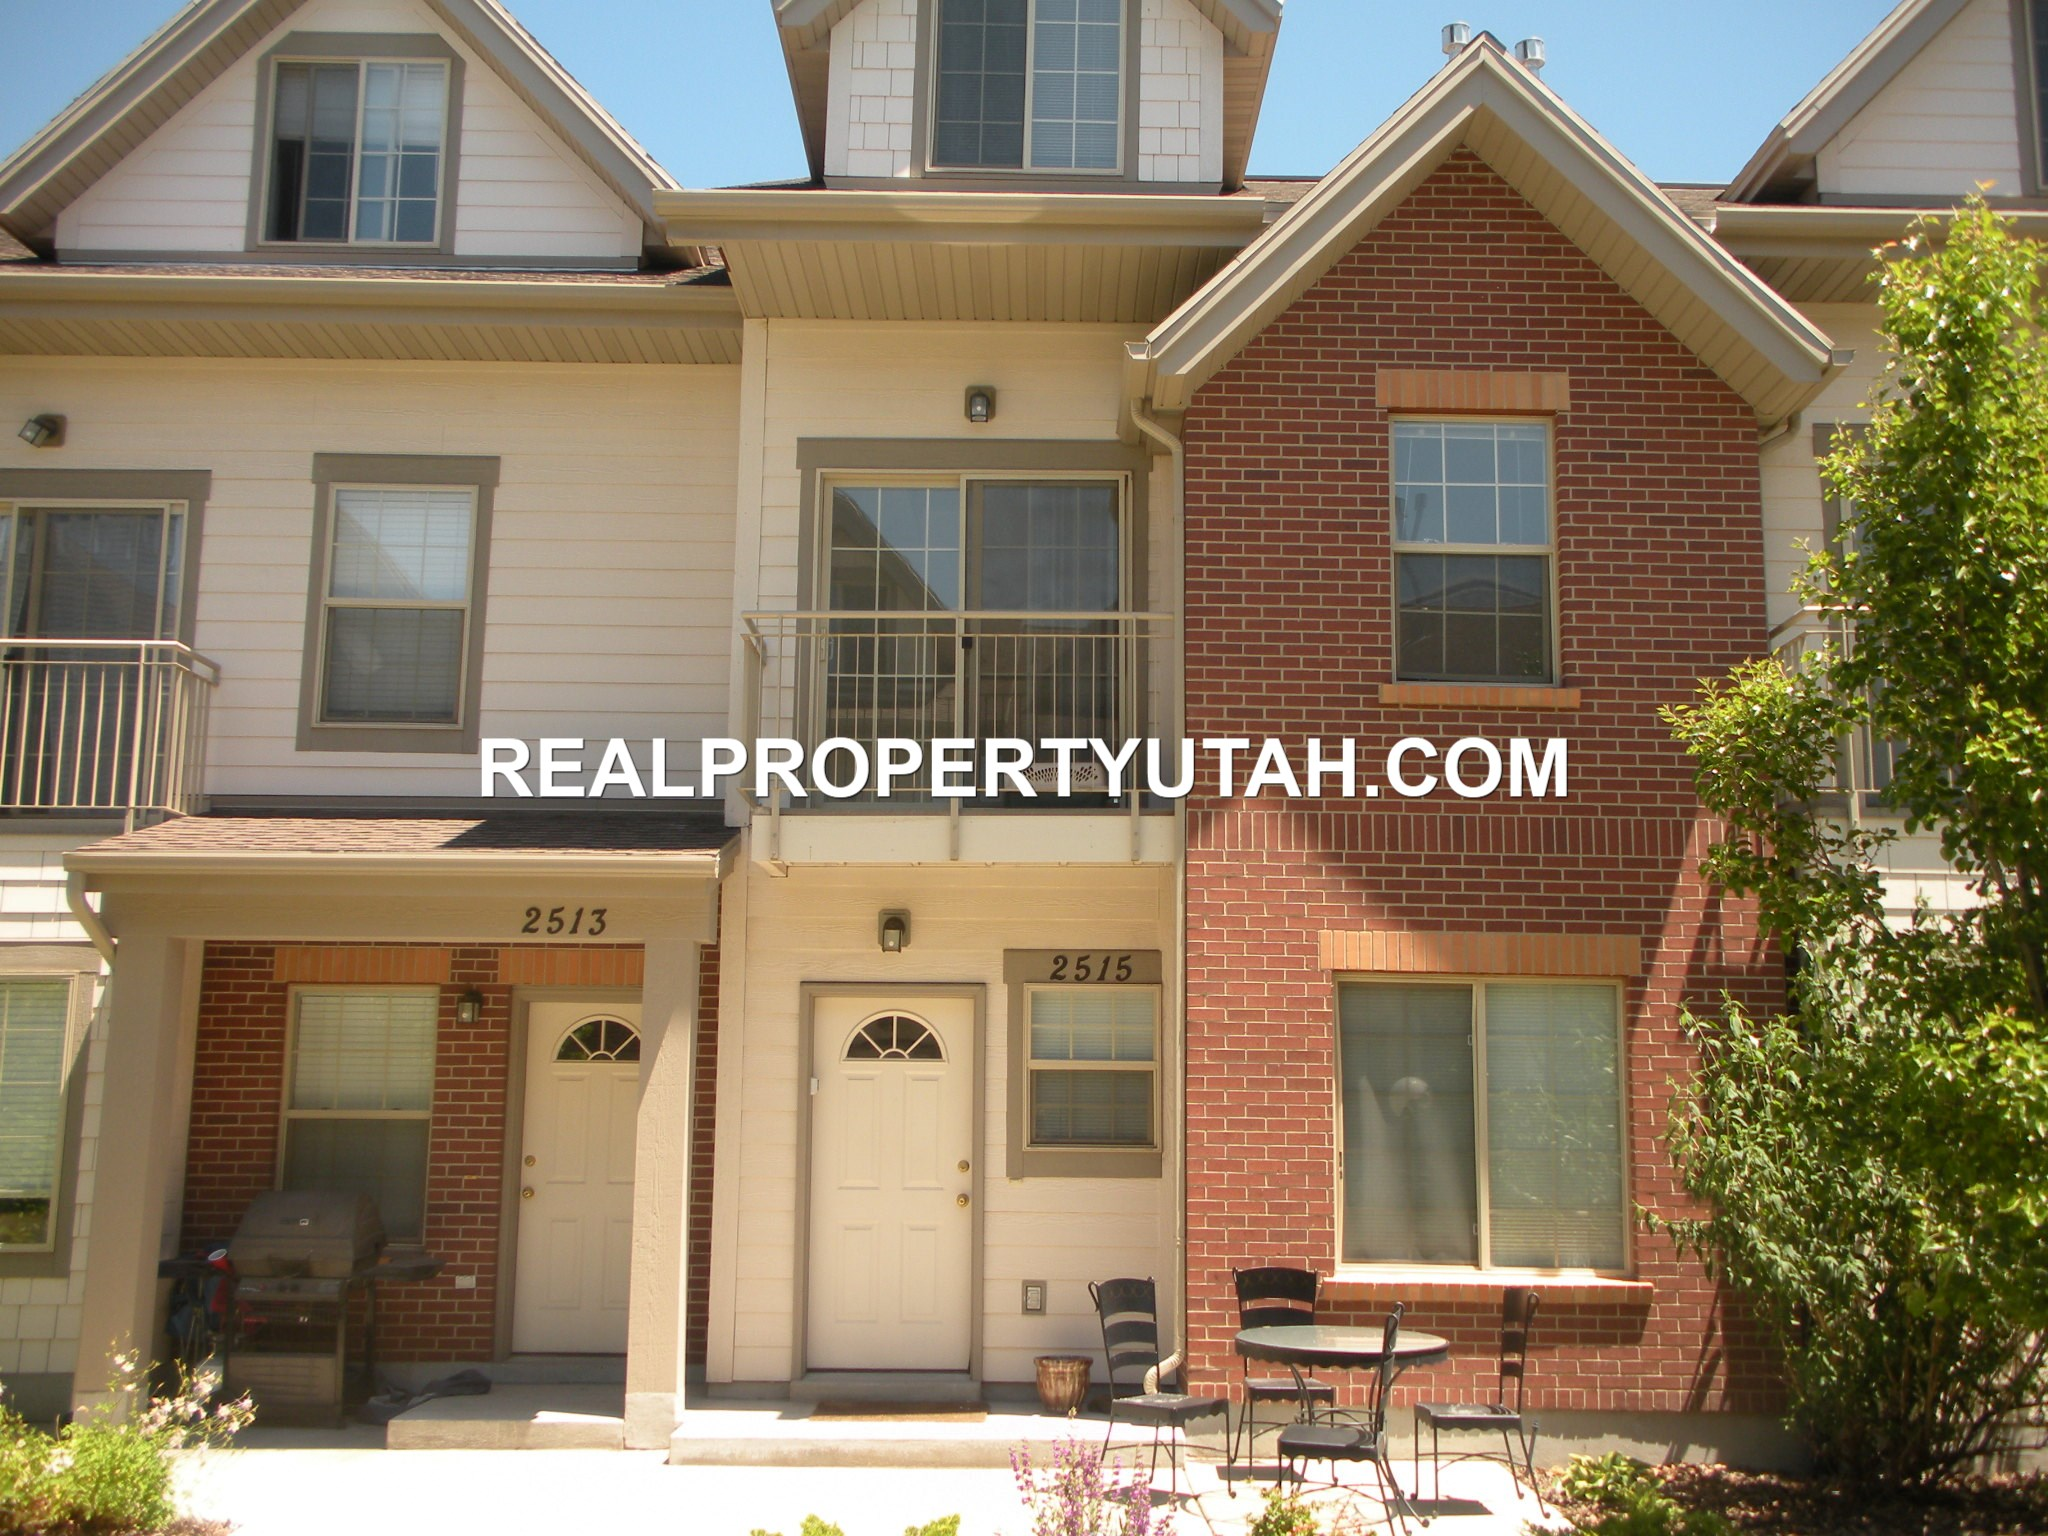 Condo for Rent in Ogden